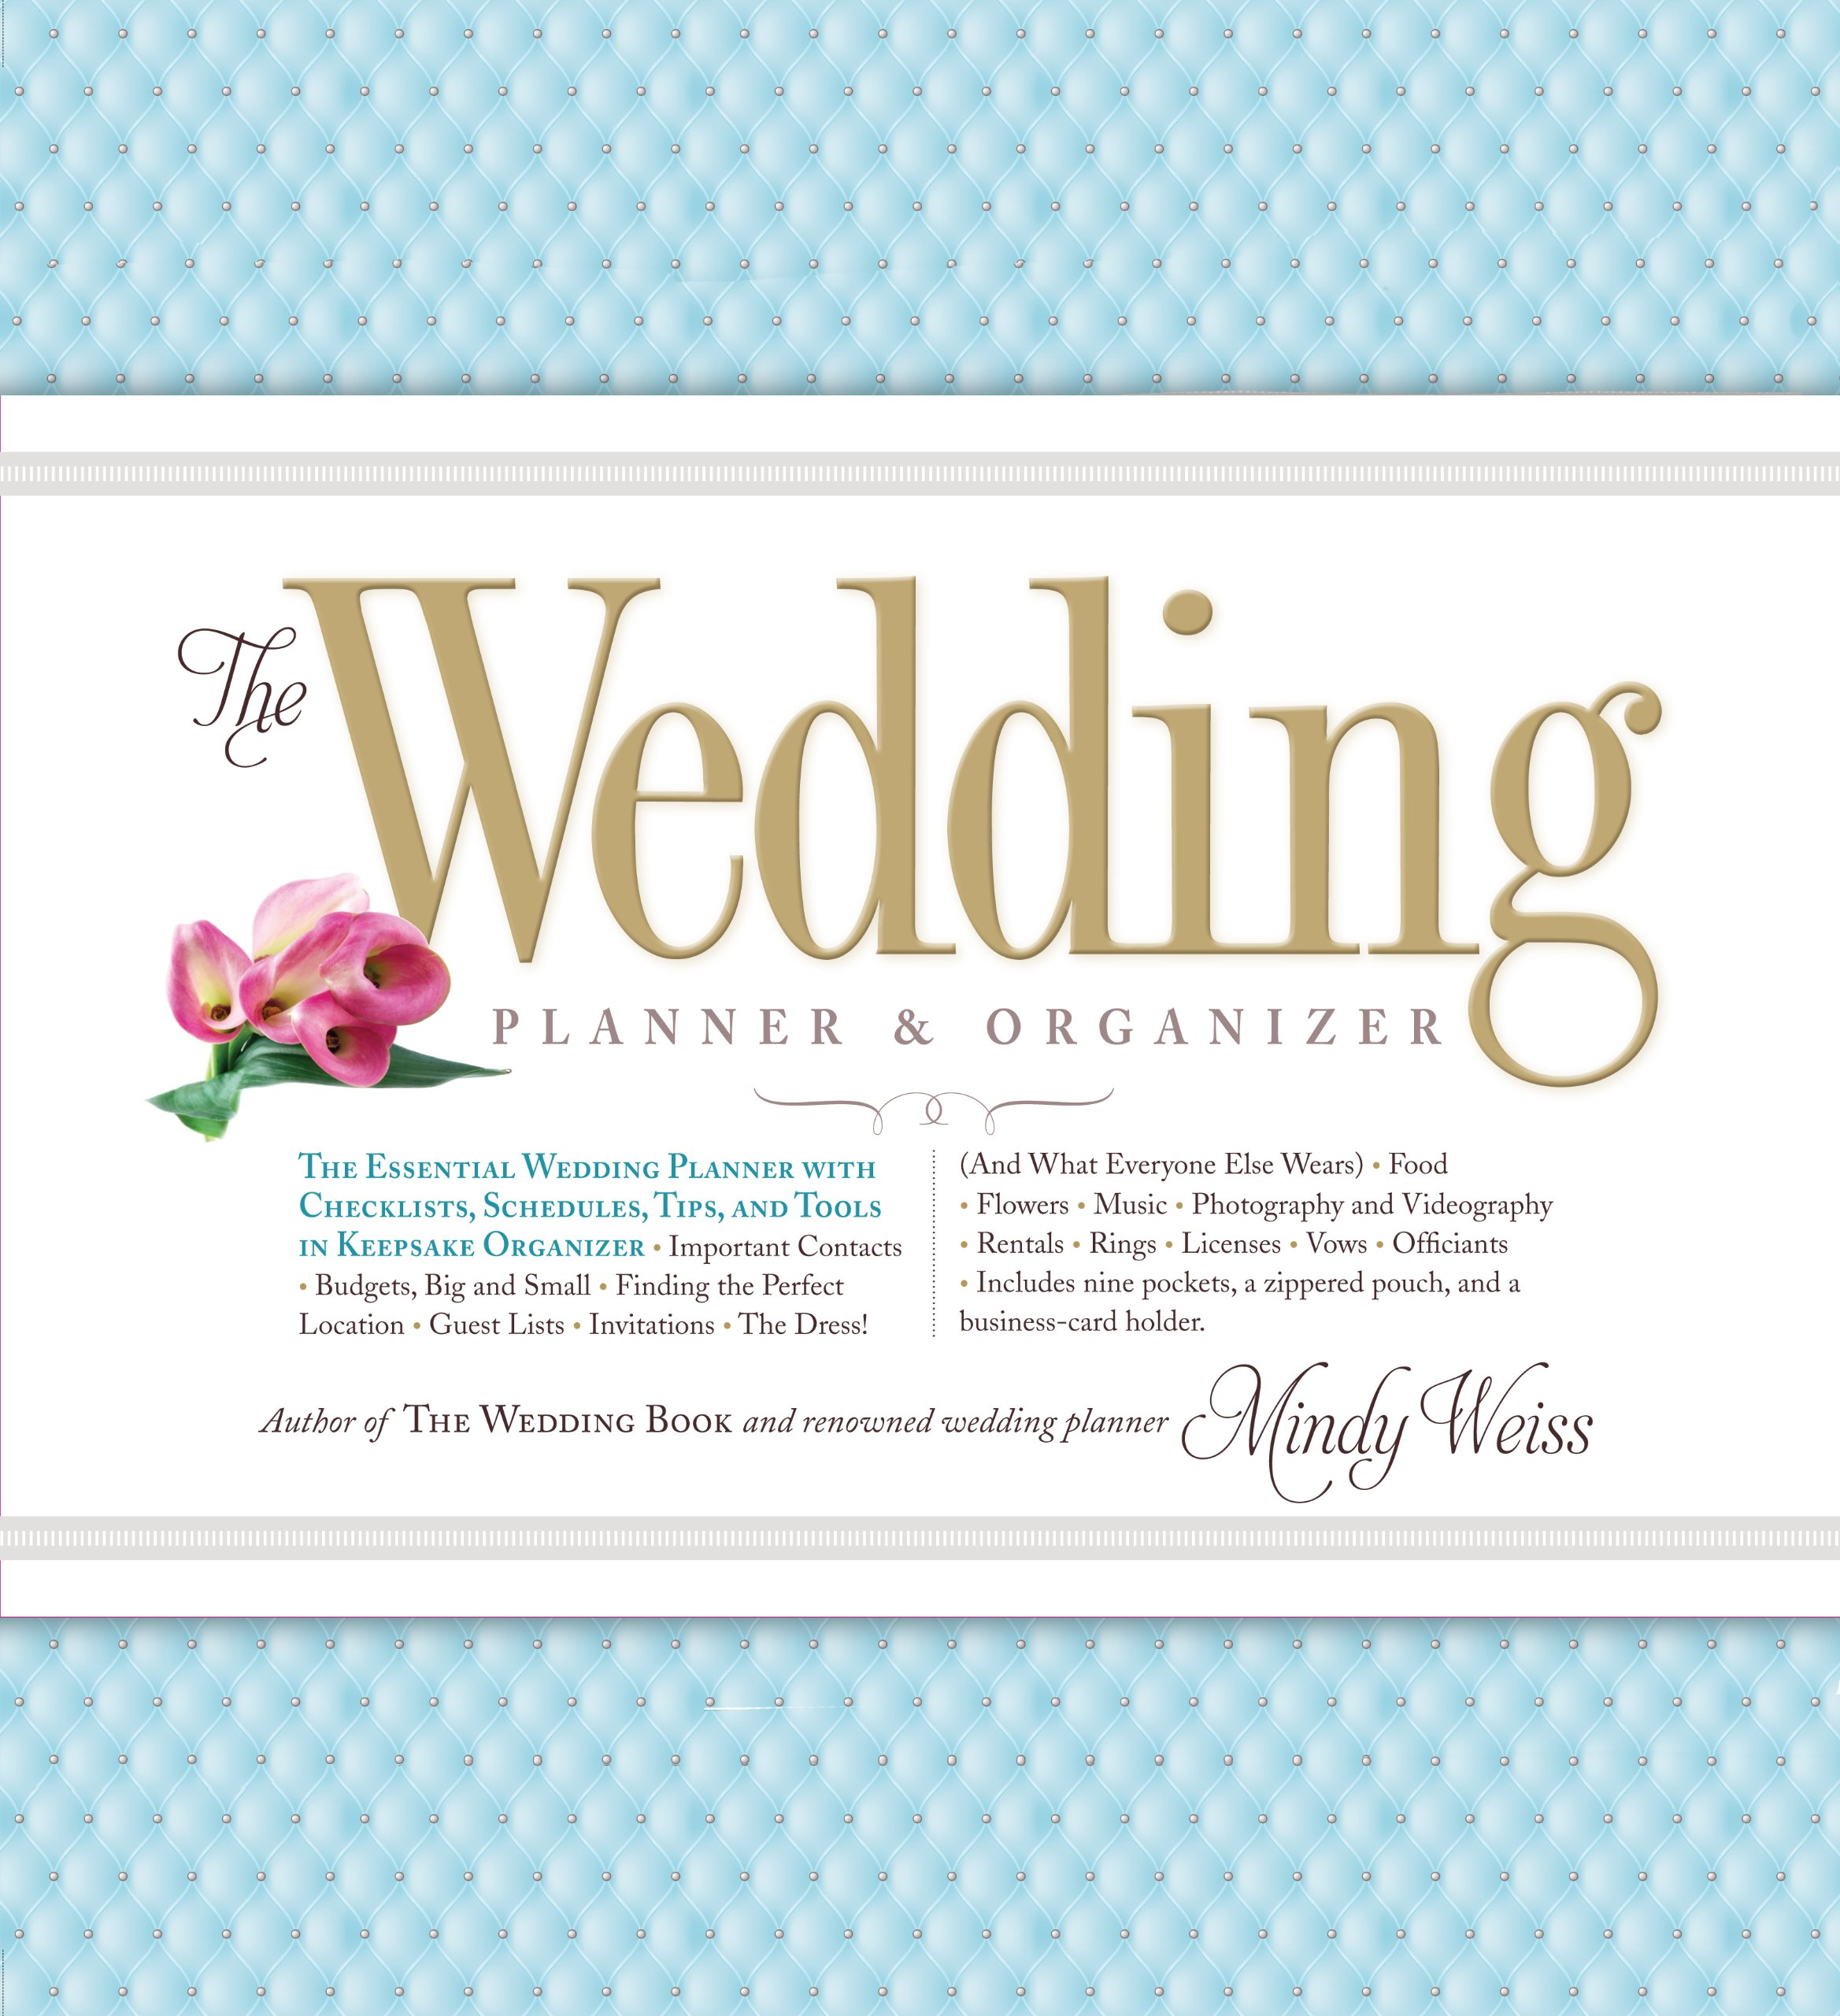 The wedding planner organizer mindy weiss 9780761165972 amazon the wedding planner organizer mindy weiss 9780761165972 amazon books junglespirit Choice Image